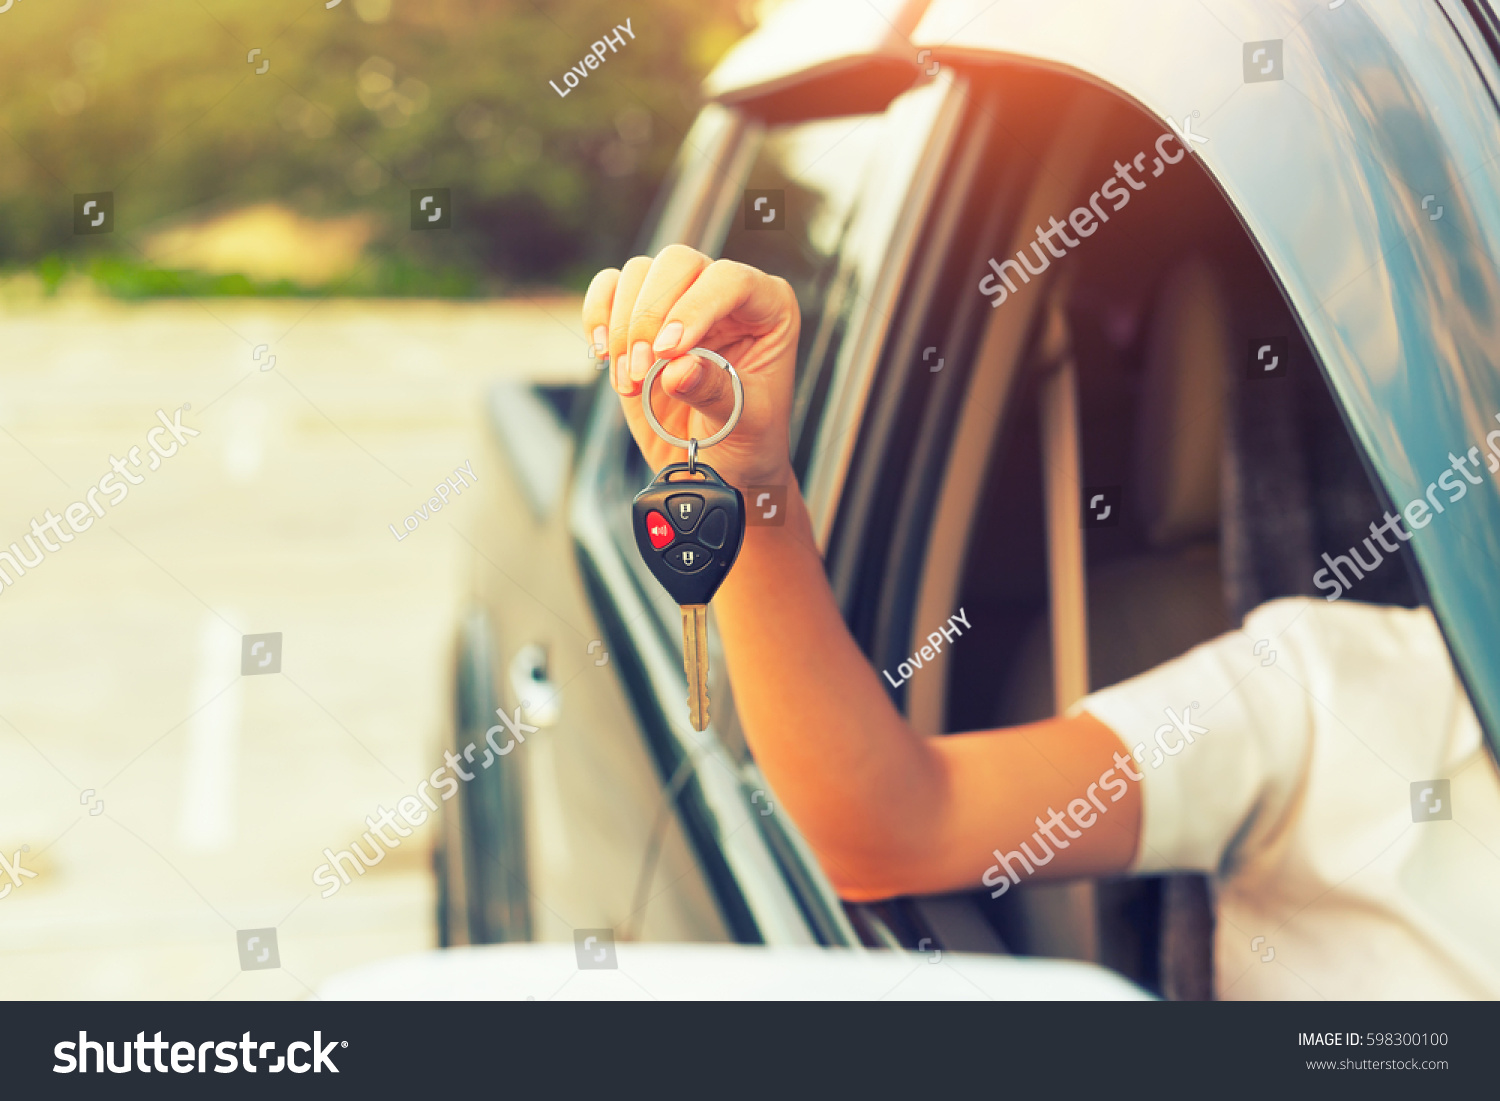 Used car and dealership concept. By woman's hand holding or giving a car key. Also for used car for sale concept, first car buy or purchase, sell, driver license, hire, loan, insurance and auction etc #598300100